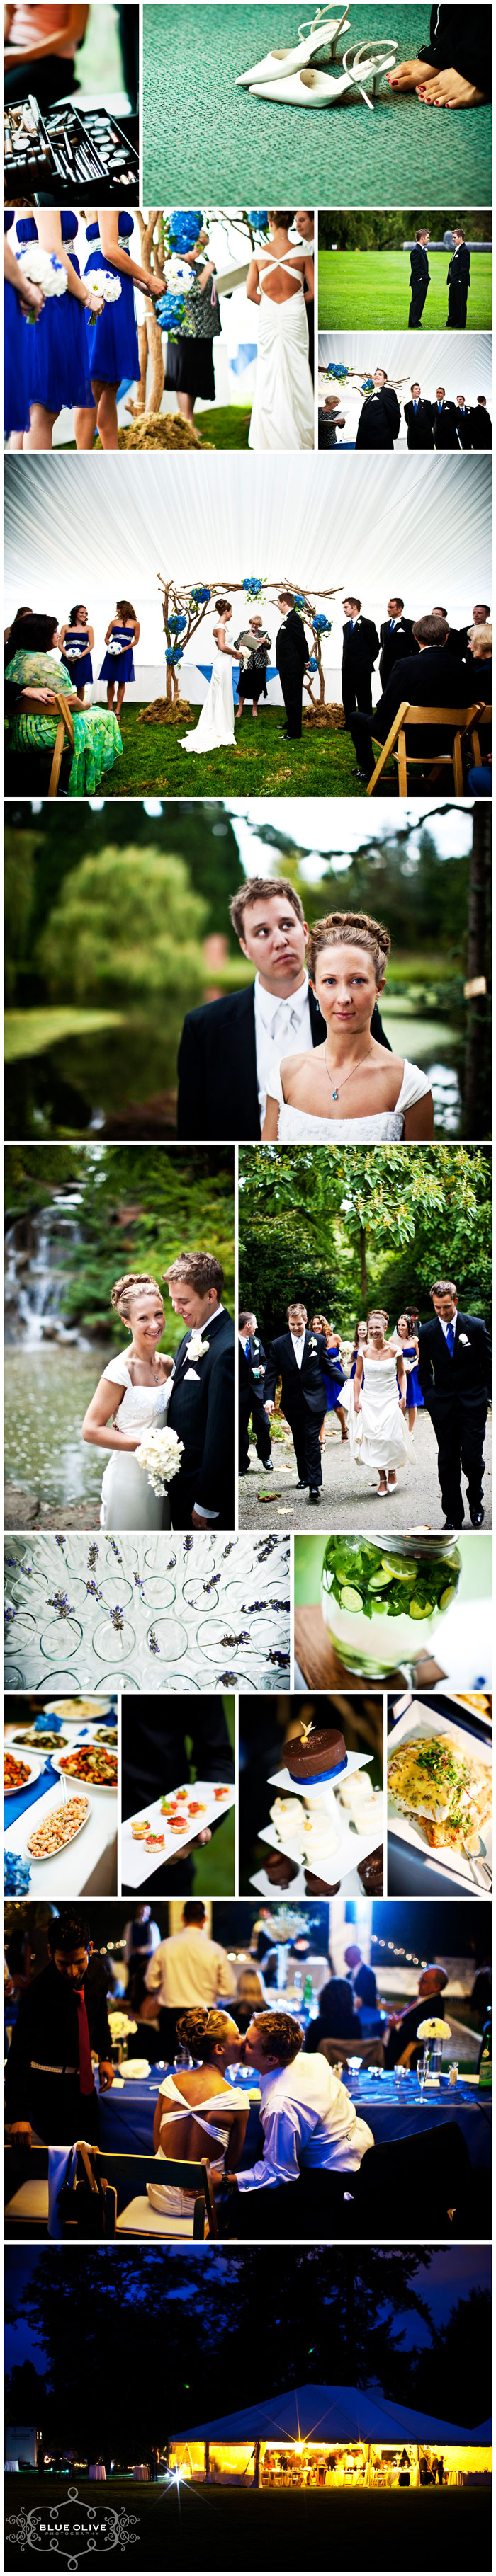 vandusen-garden-wedding